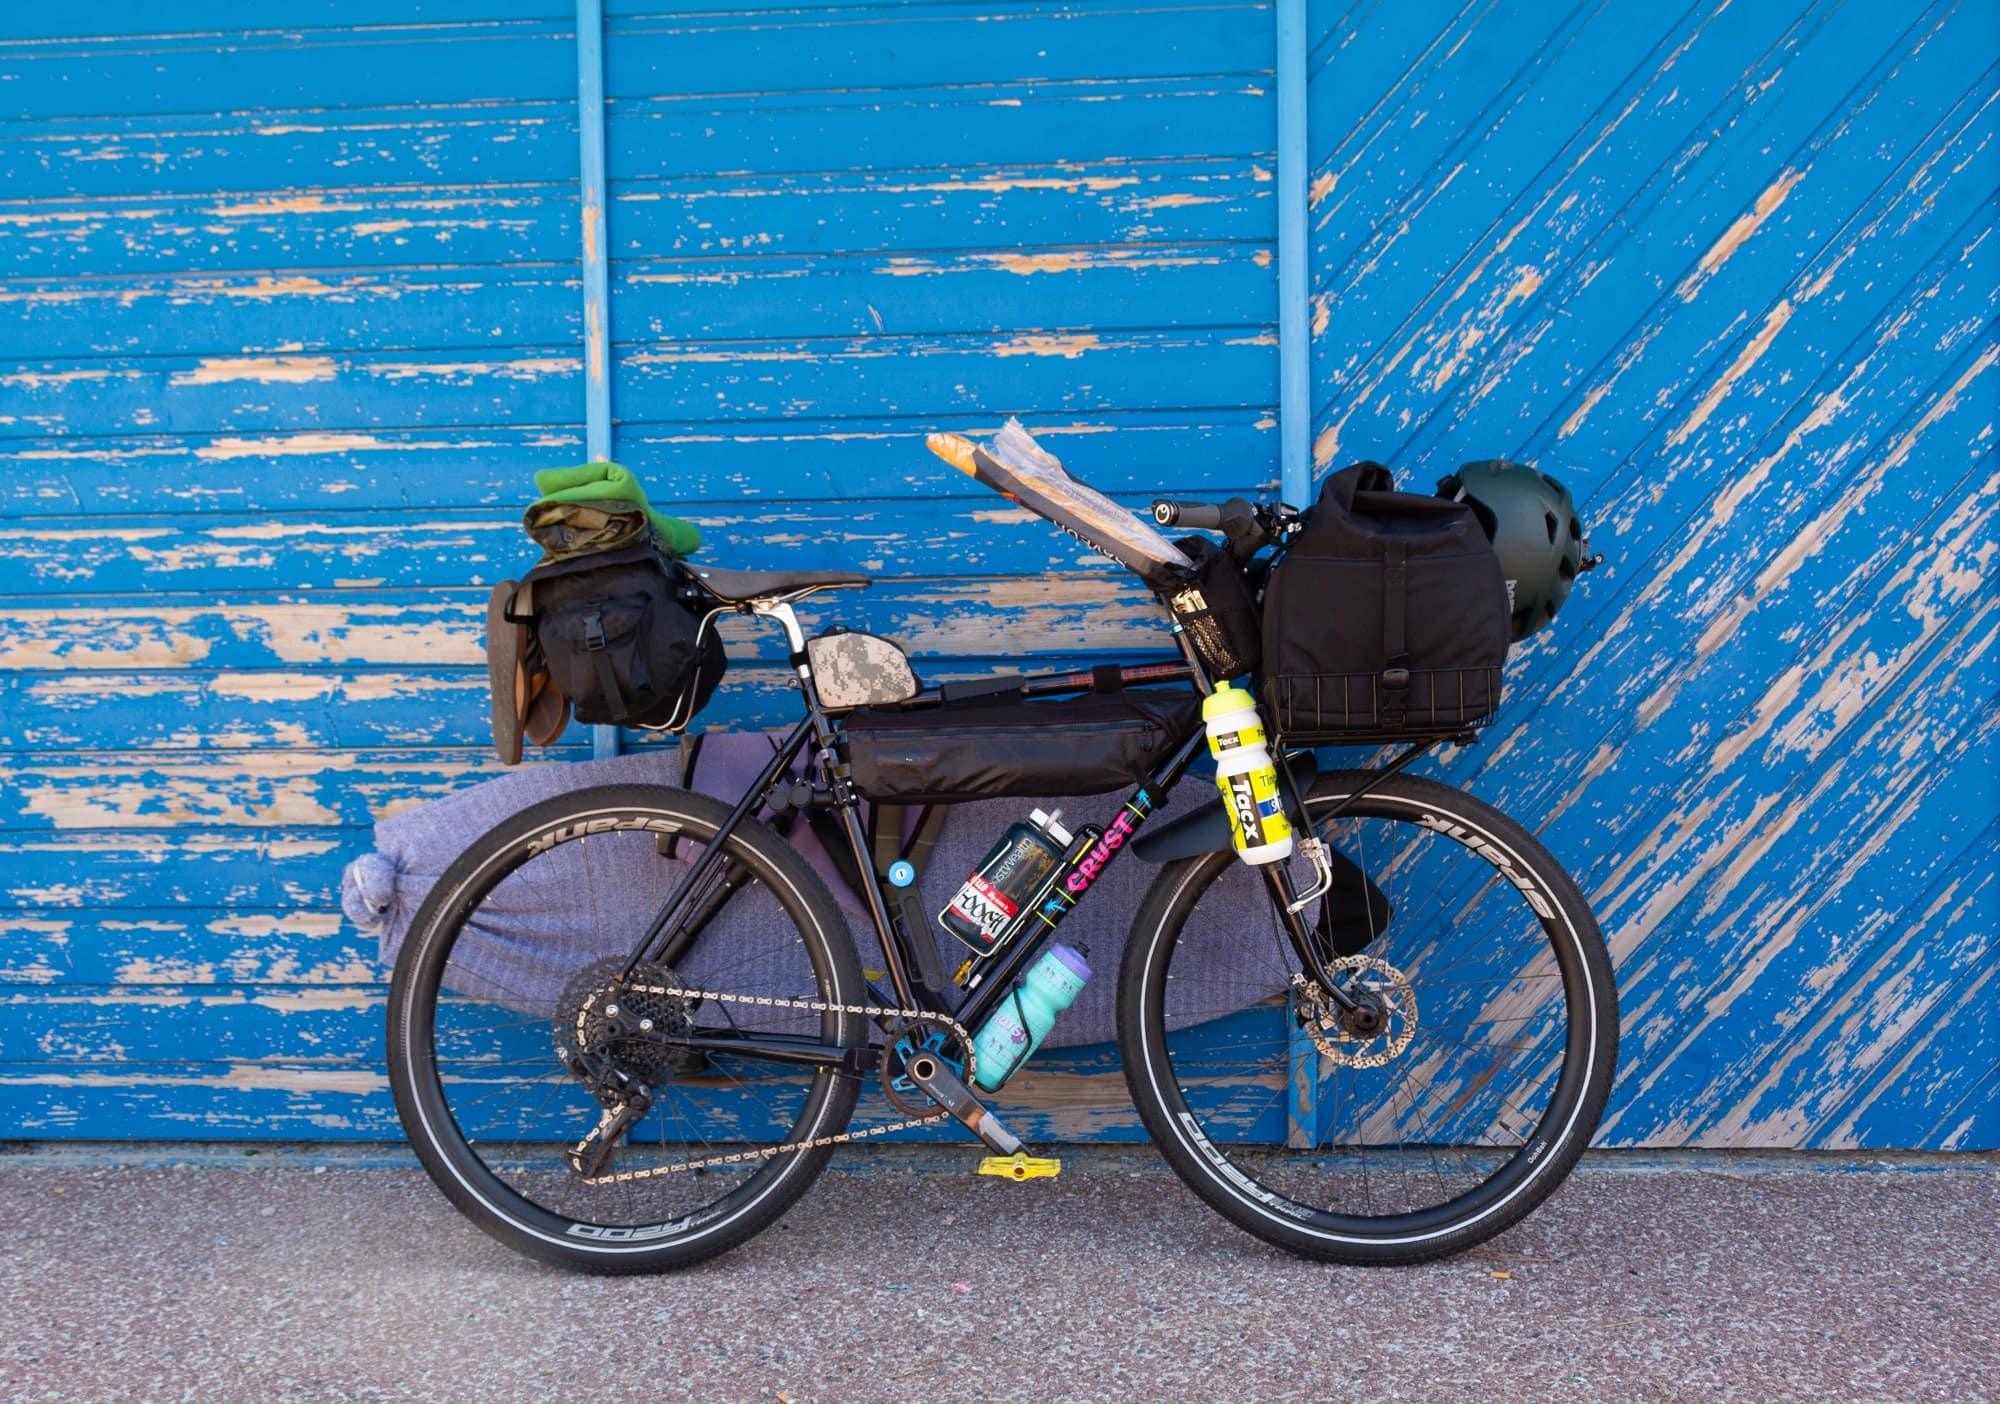 The Ultimate Bike Touring Gear Guide for Women